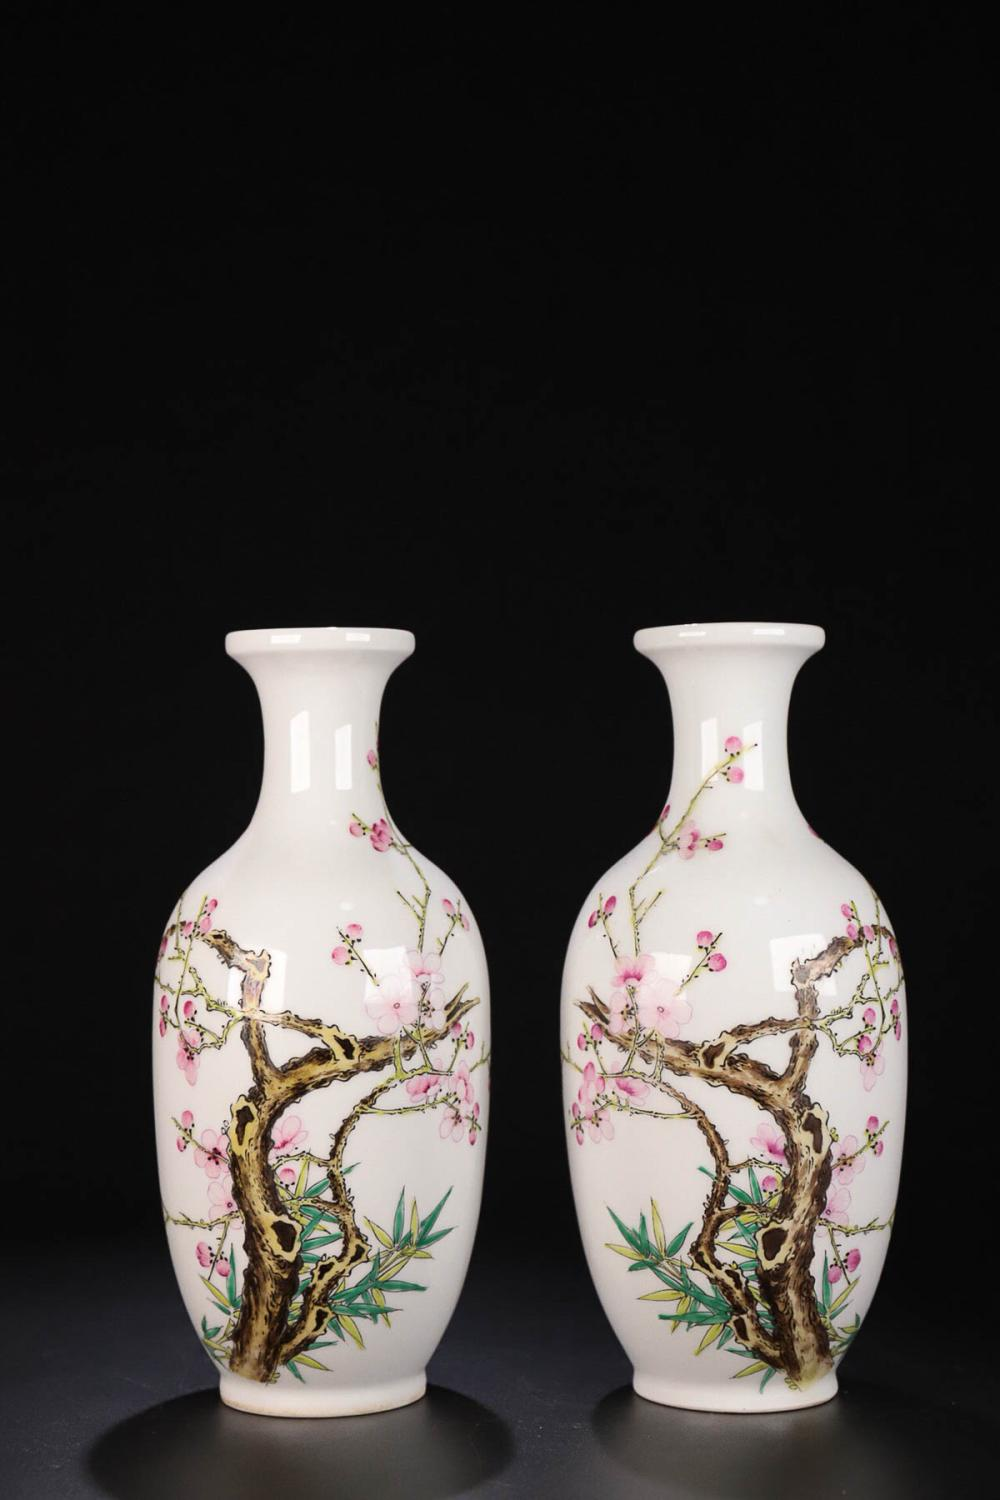 17-19TH CENTURY, A PAIR OF FLORAL&BIRD PATTERN FAMILLI ROSE VASES, QING DYNASTY